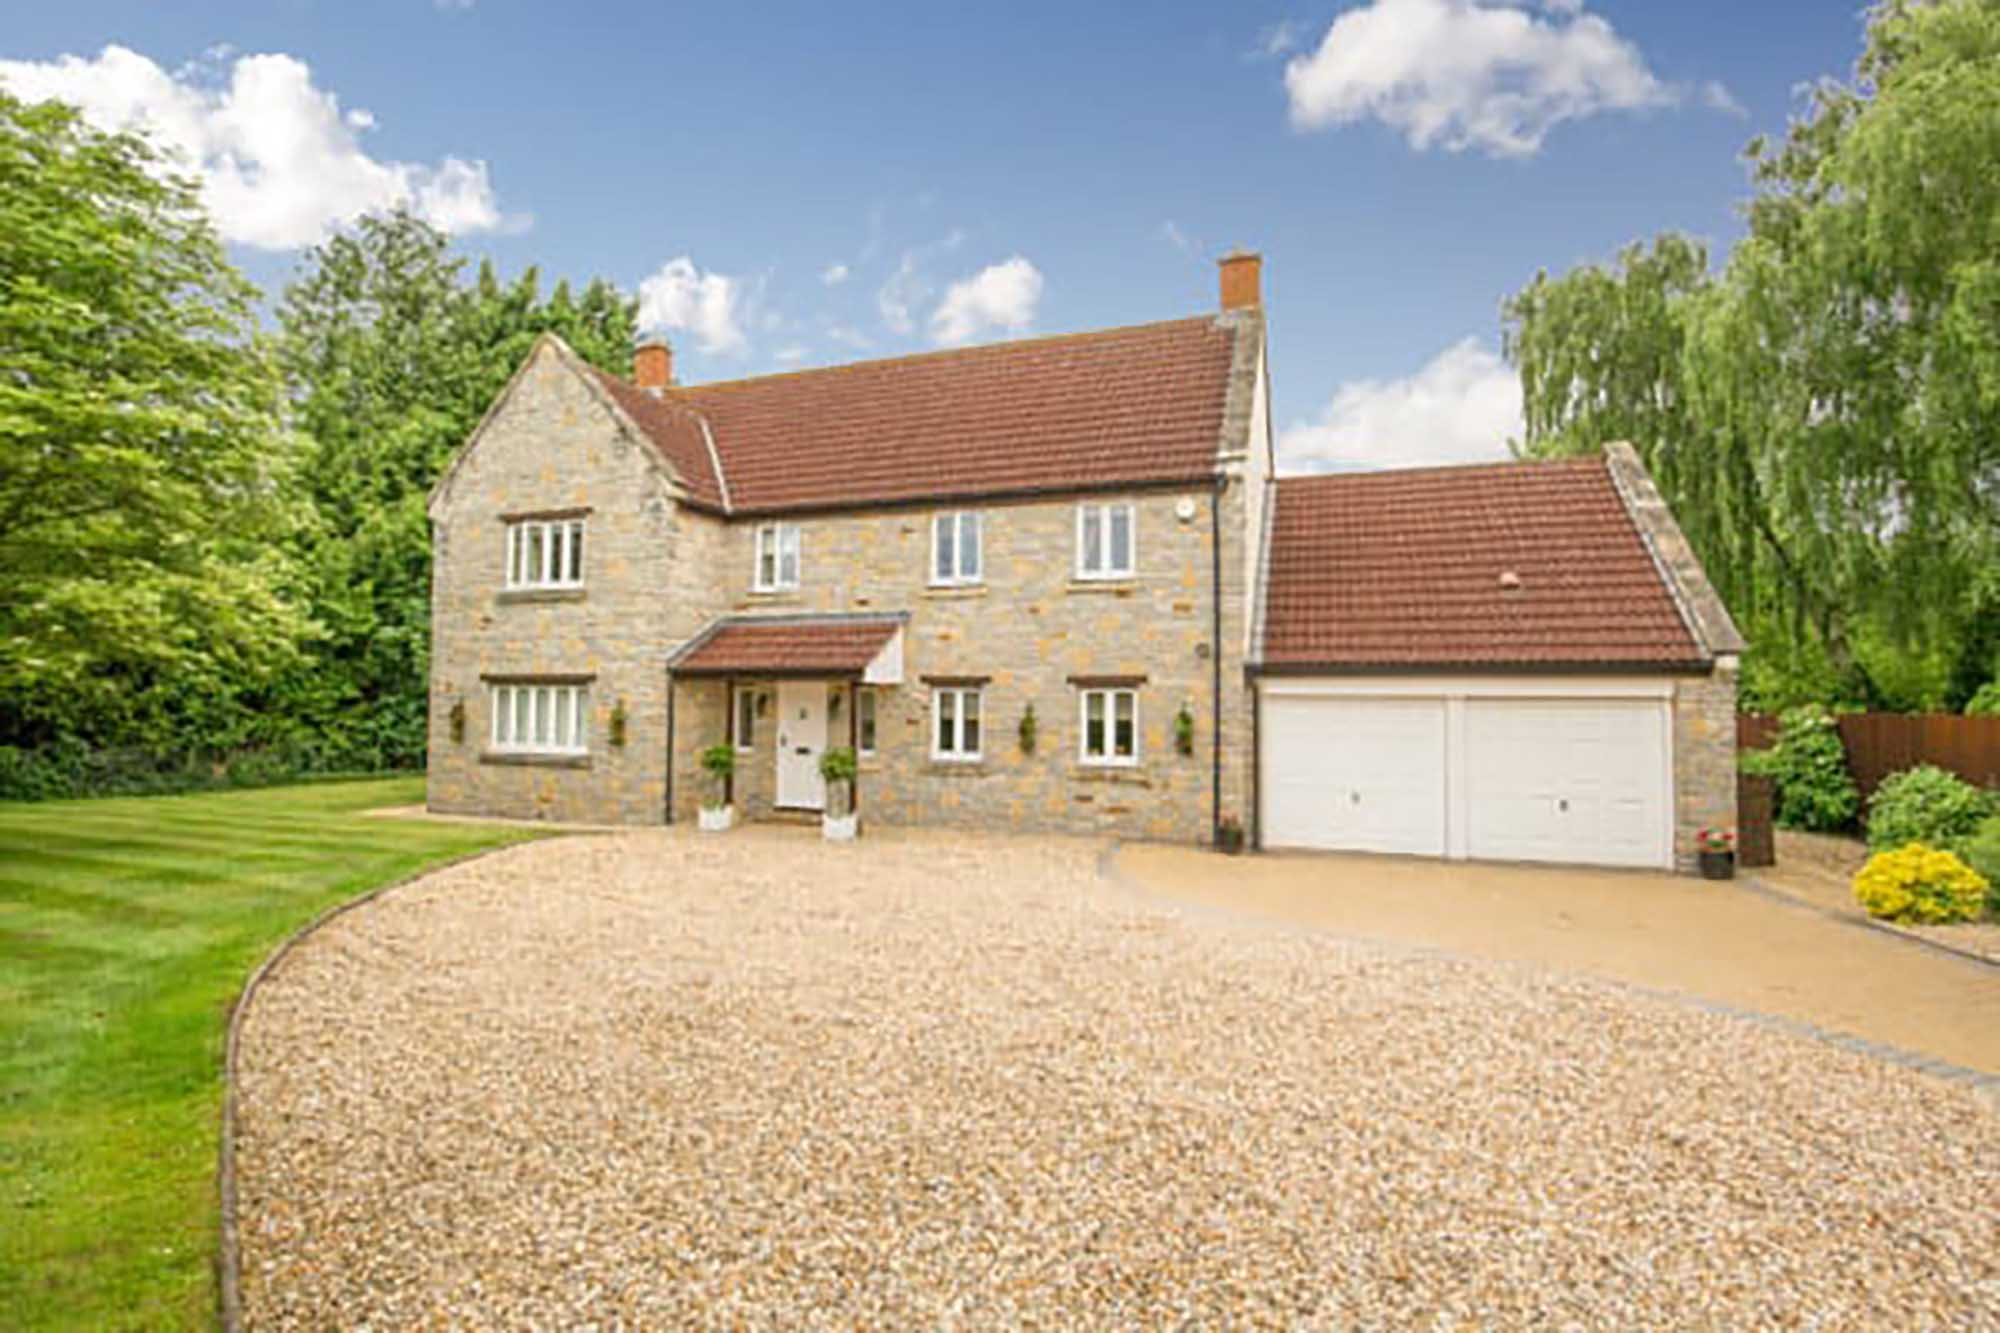 Large family home in peaceful and convenient location in village of Henton near Wells